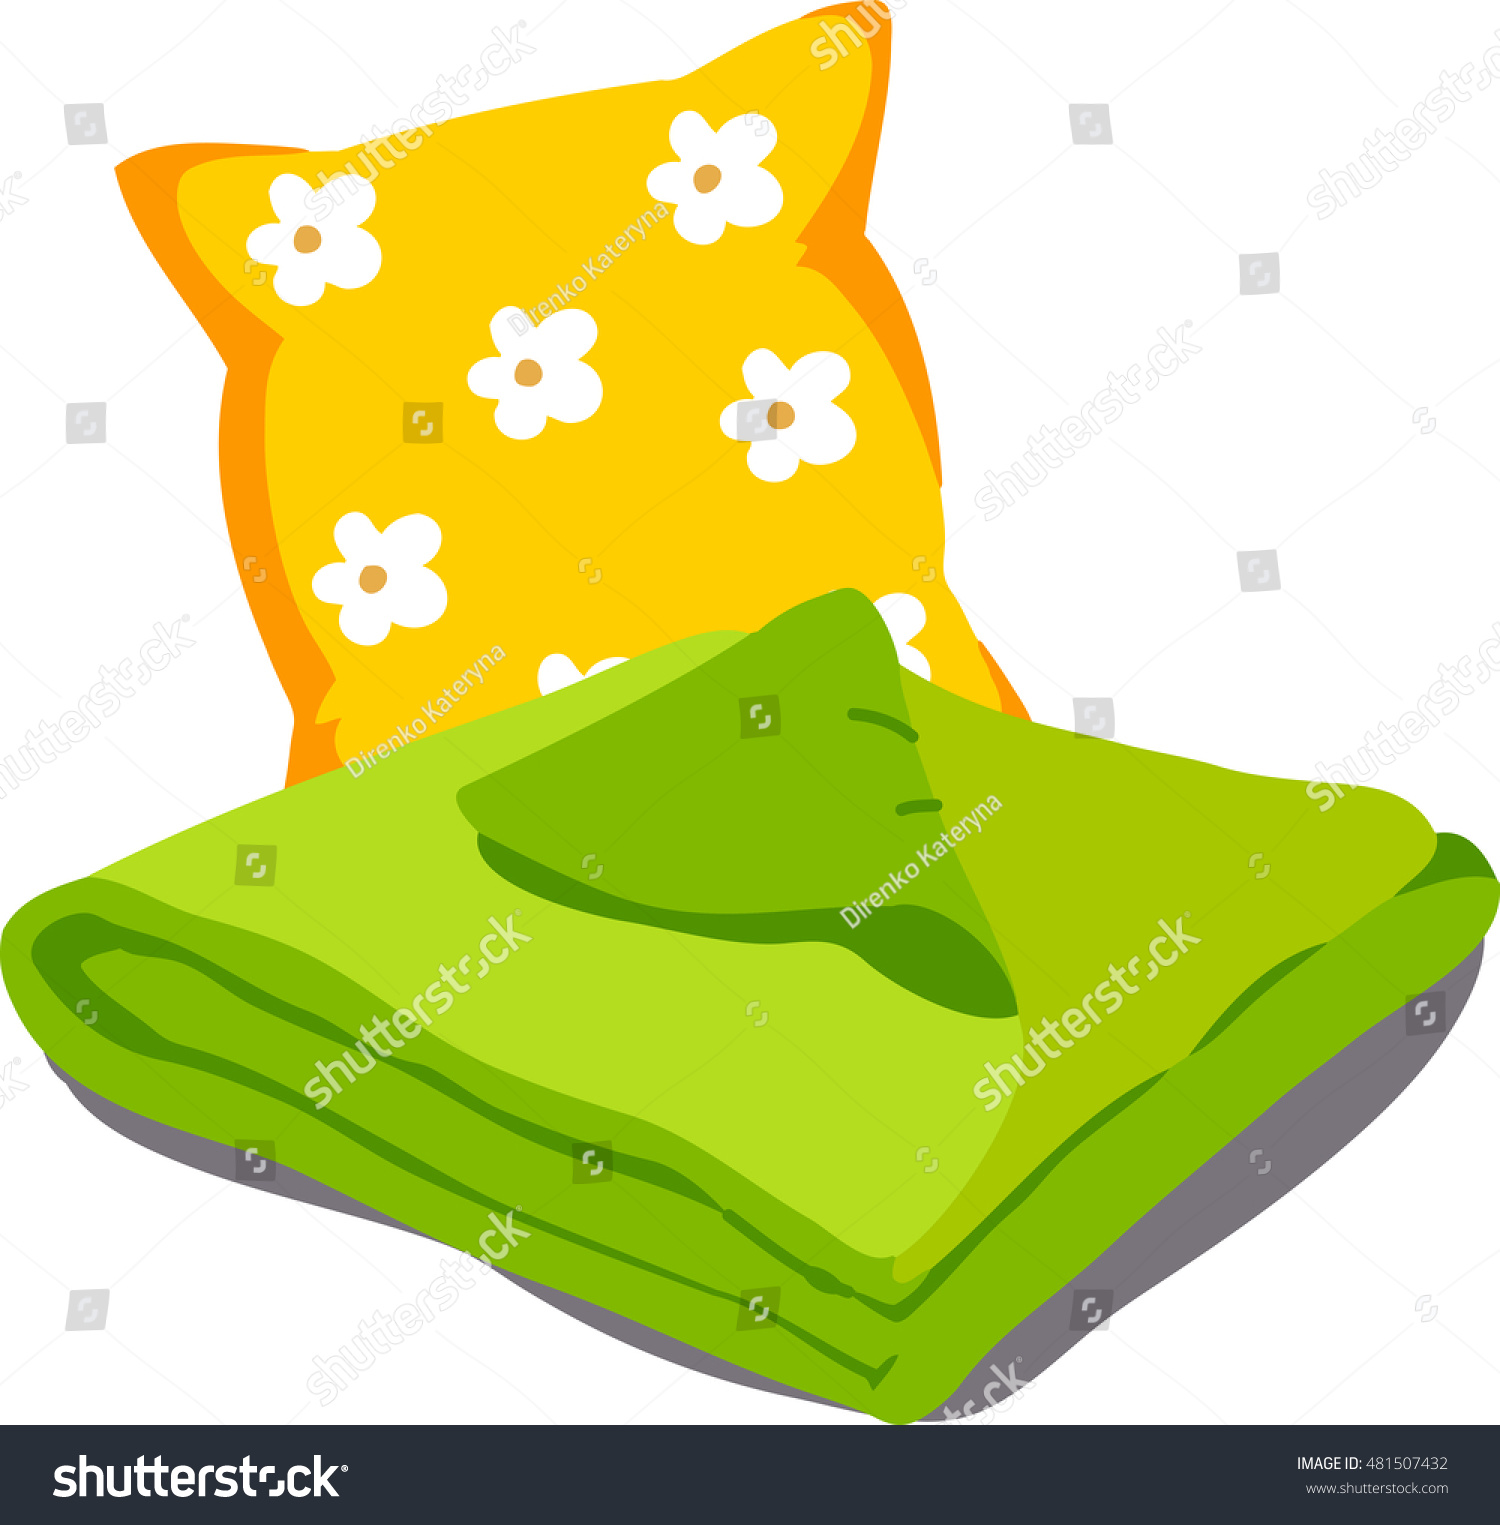 Color Bed Linen Pillows Sheets Blankets Stock Vector 481507432 ... for Pillow And Blanket Clipart  143gtk